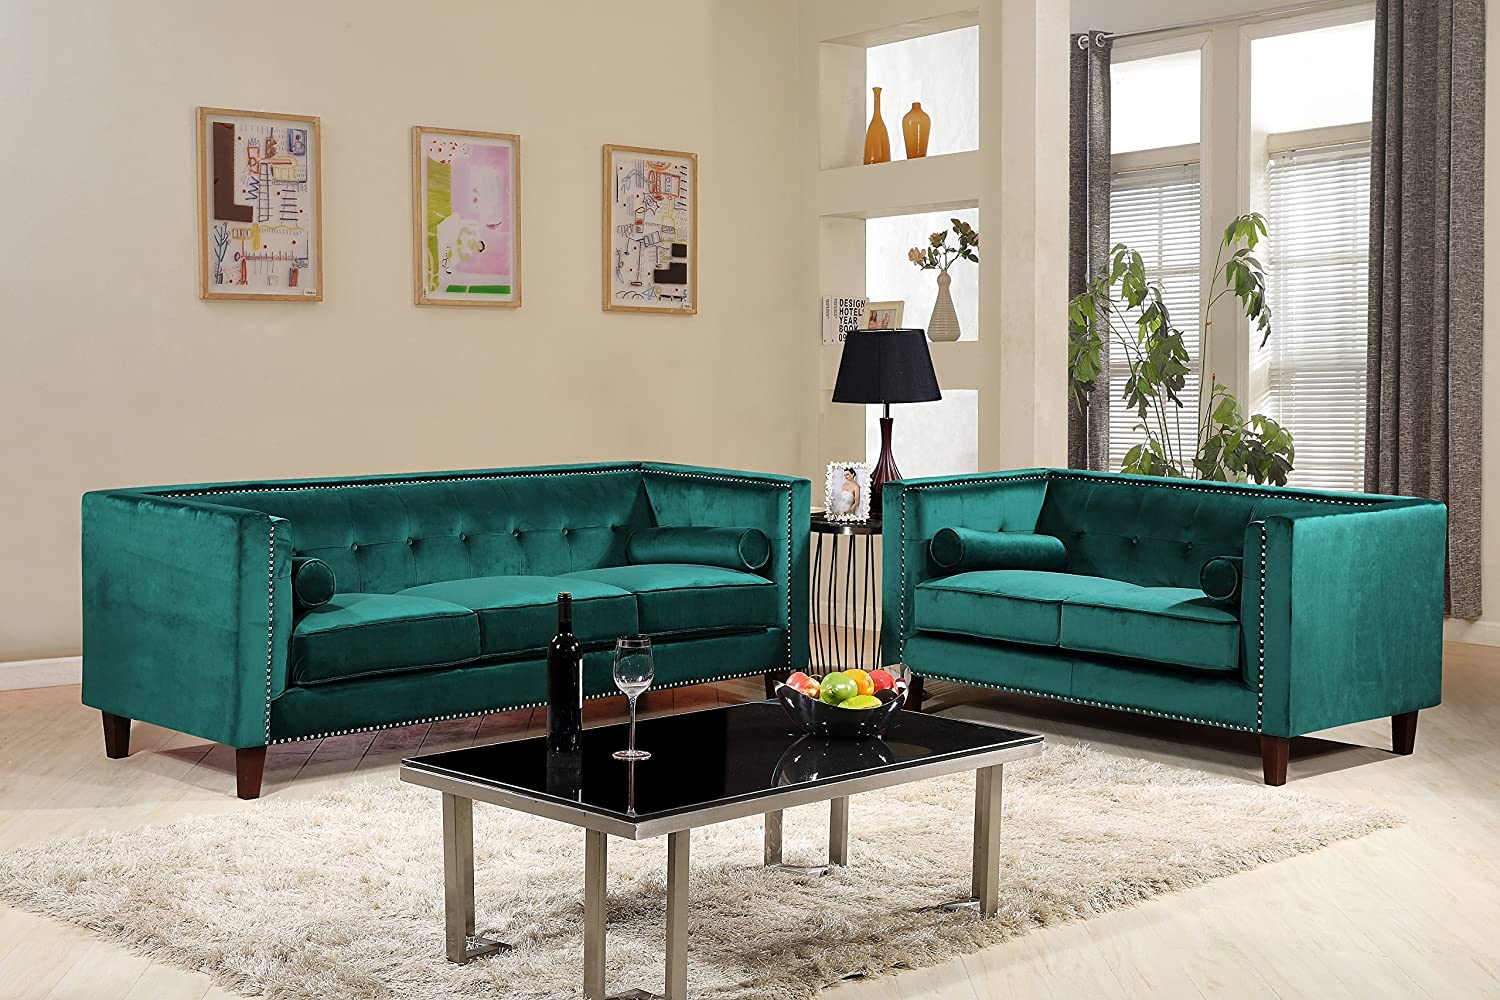 Container Furniture Direct S5371-2PC Kitts Velvet Upholstered Modern Chesterfield Sofa Set, 78